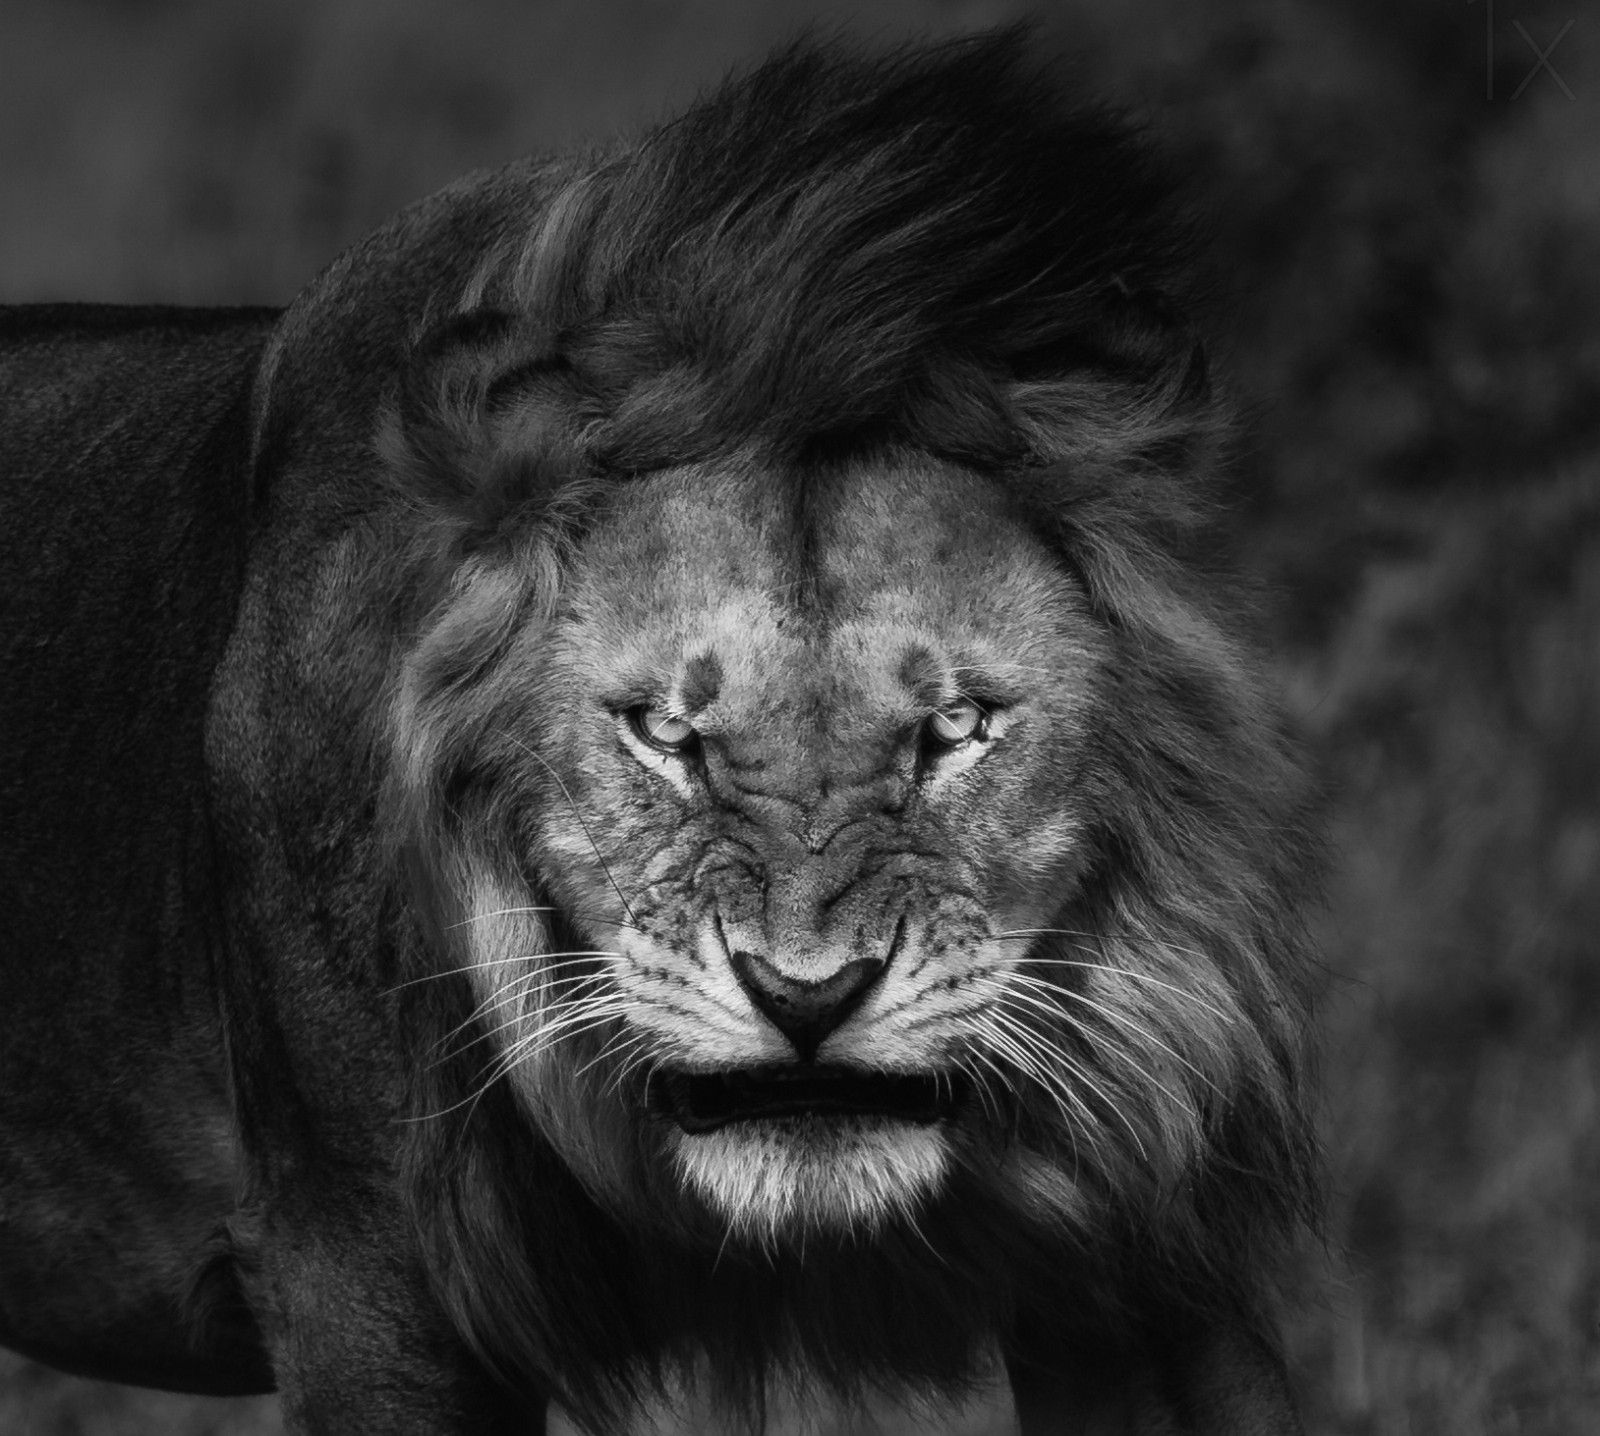 Most Inspiring Wallpaper Logo Lion - 1cf727ac862b1ae63e718c0d06f30643  Perfect Image Reference_366112.jpg